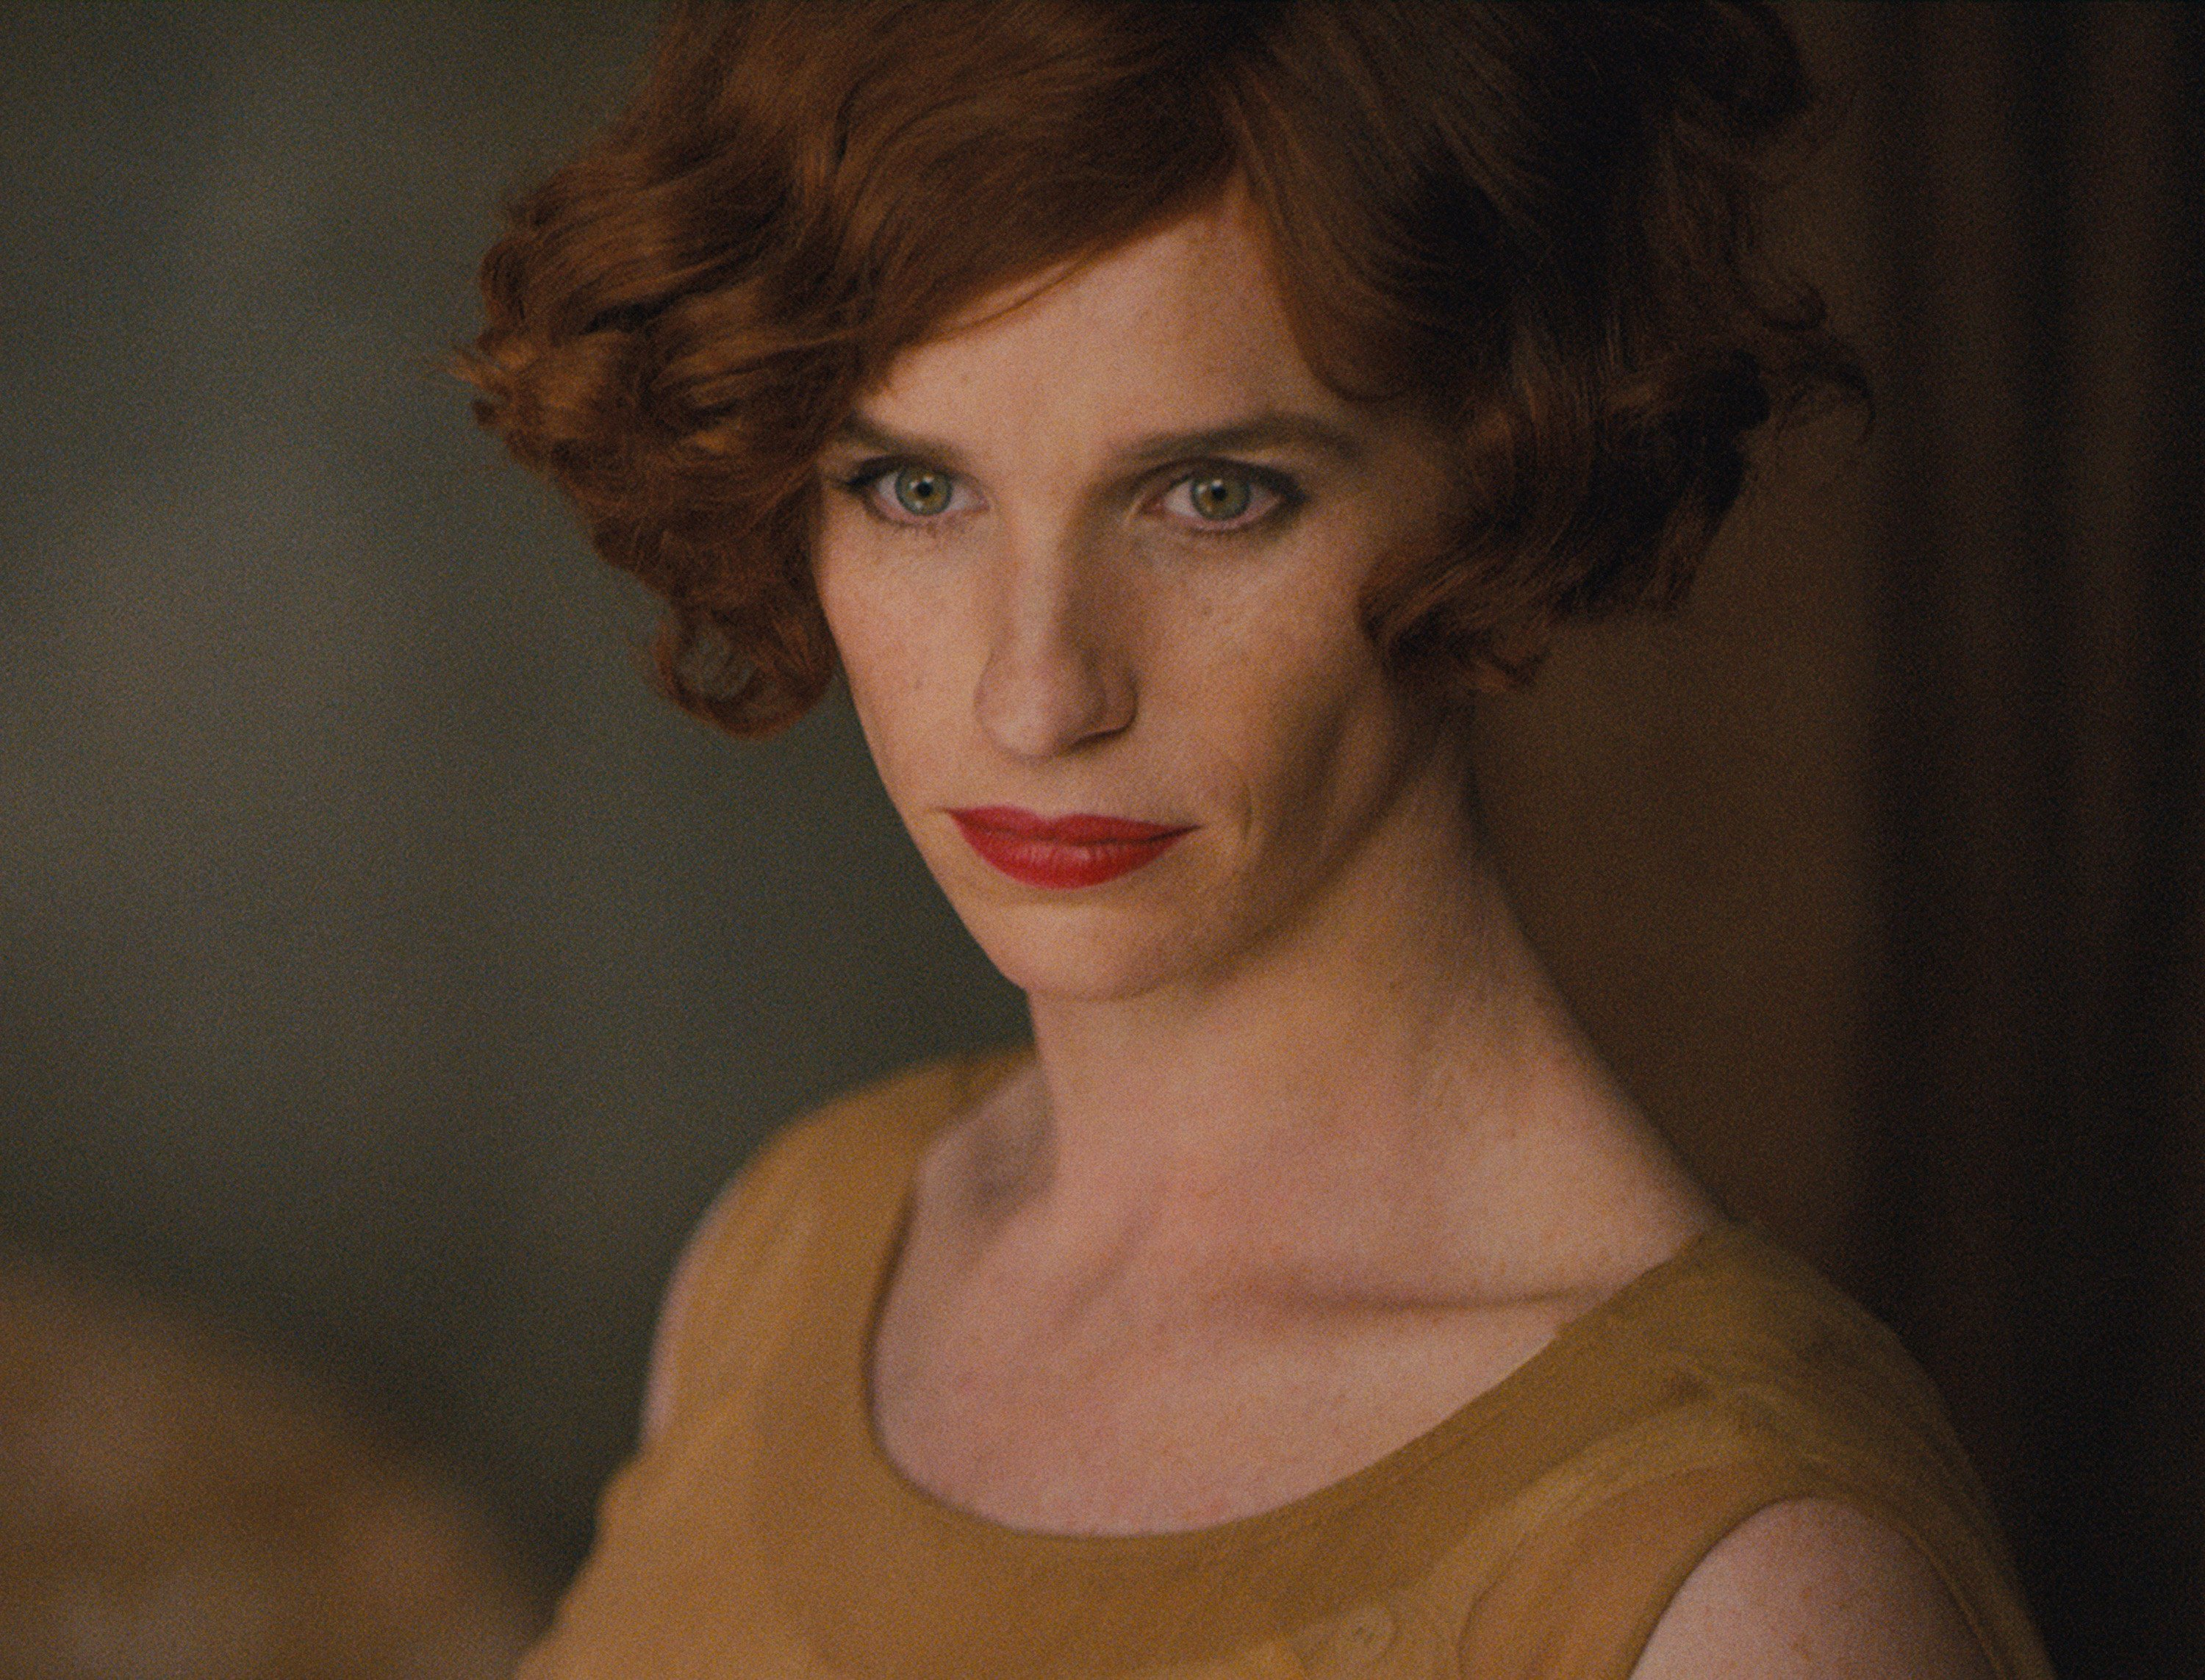 "This photo provided by Focus Features shows, Eddie Redmayne as Lili Elbe, in Tom Hooperís ""The Danish Girl."" The Hollywood blacklist drama ""Trumbo"" scored a leading three Screen Actors Guild Awards nominations, Wednesday, but it was sleeper contenders ""Beasts of No Nation"" and ""Straight Outta Compton"" that entered the awards conversation in a real way when both were nominated for best ensemble drama. The lead actor nominees were a bit more expected, with recognition for Bryan Cranston (""Trumbo""), Johnny Depp (""Black Mass""), Leonardo DiCaprio (""The Revenant""), Michael Fassbender (""Steve Jobs""), and Redmayne (""The Danish Girl""). (Focus Features via AP)"